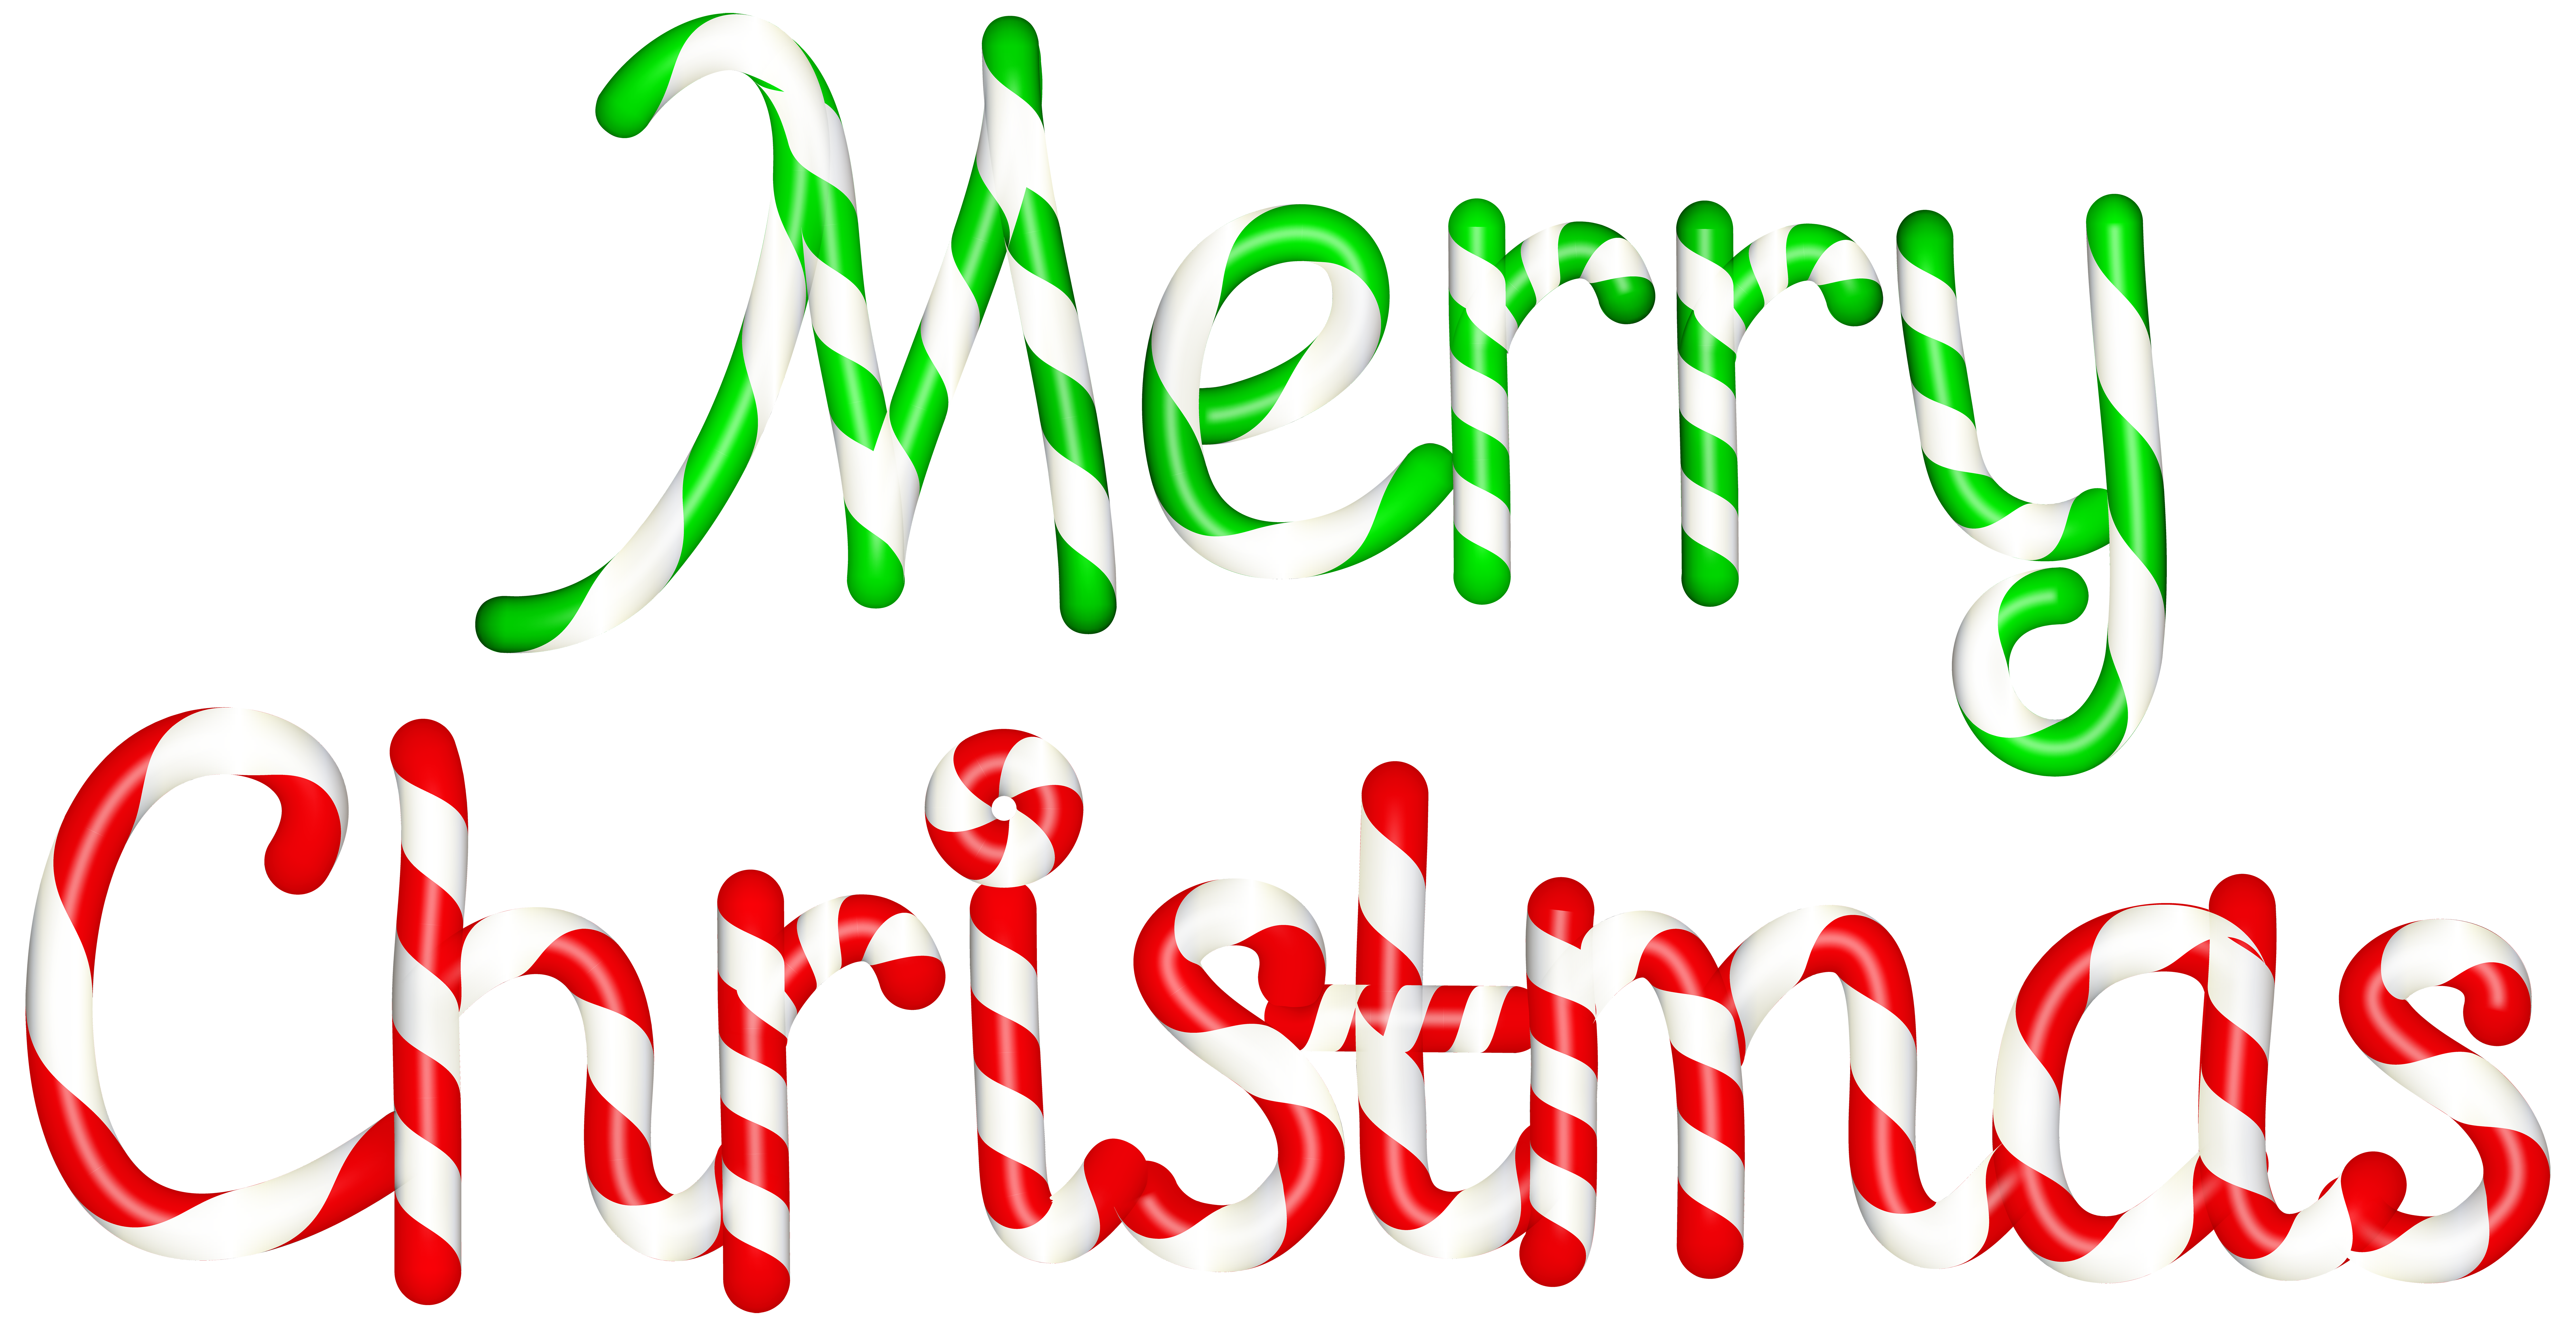 Merry Christmas Clipart Transparent Background.